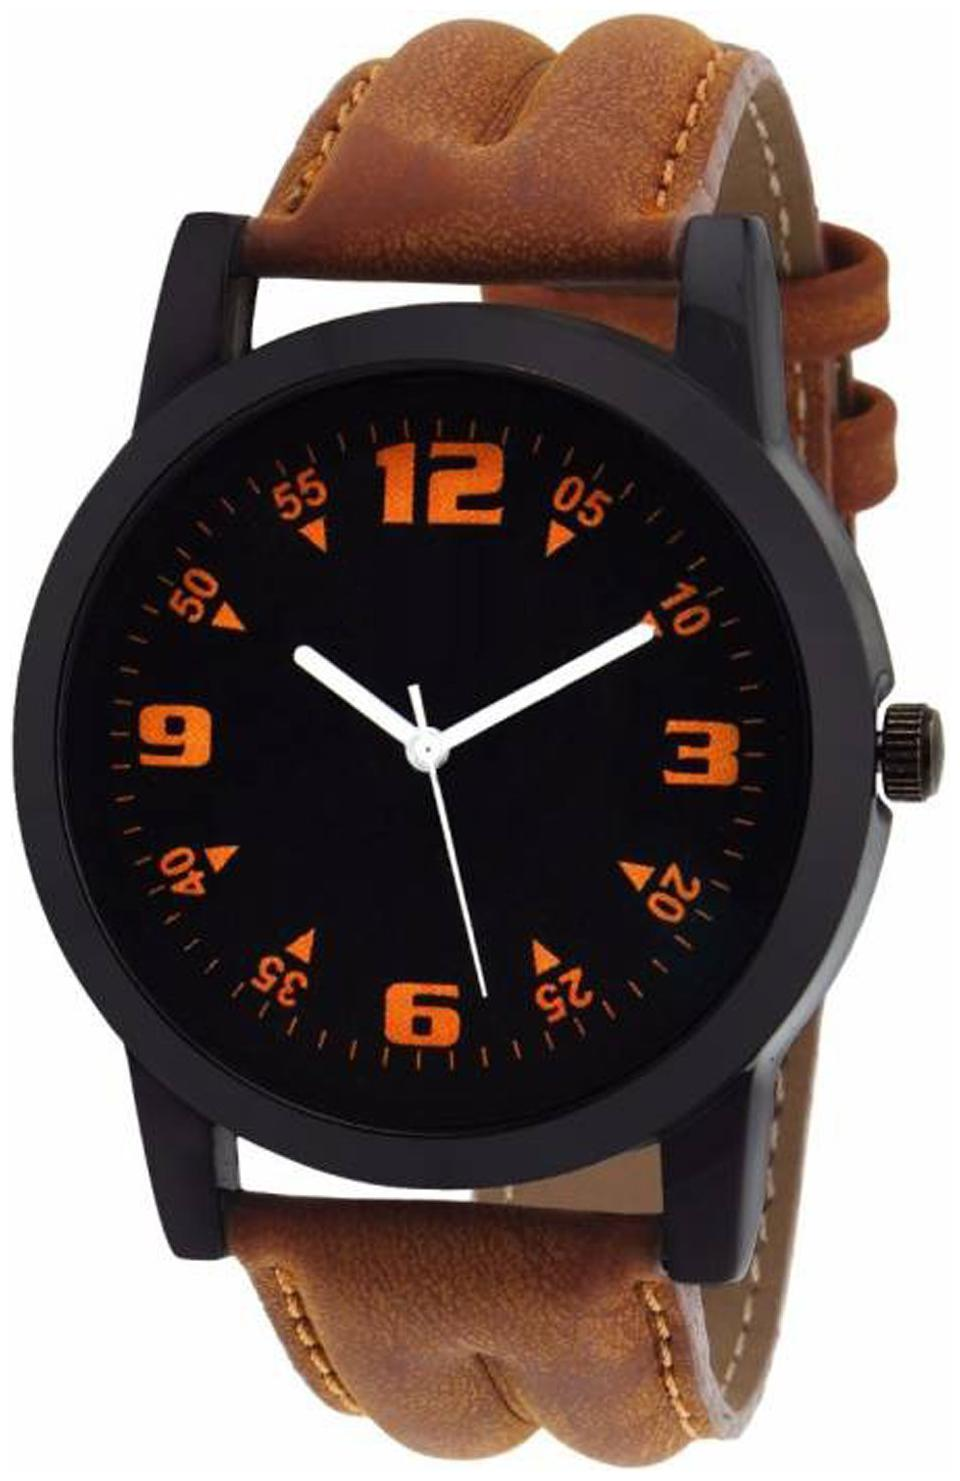 Pirlo Analog Watch For Boy And Men